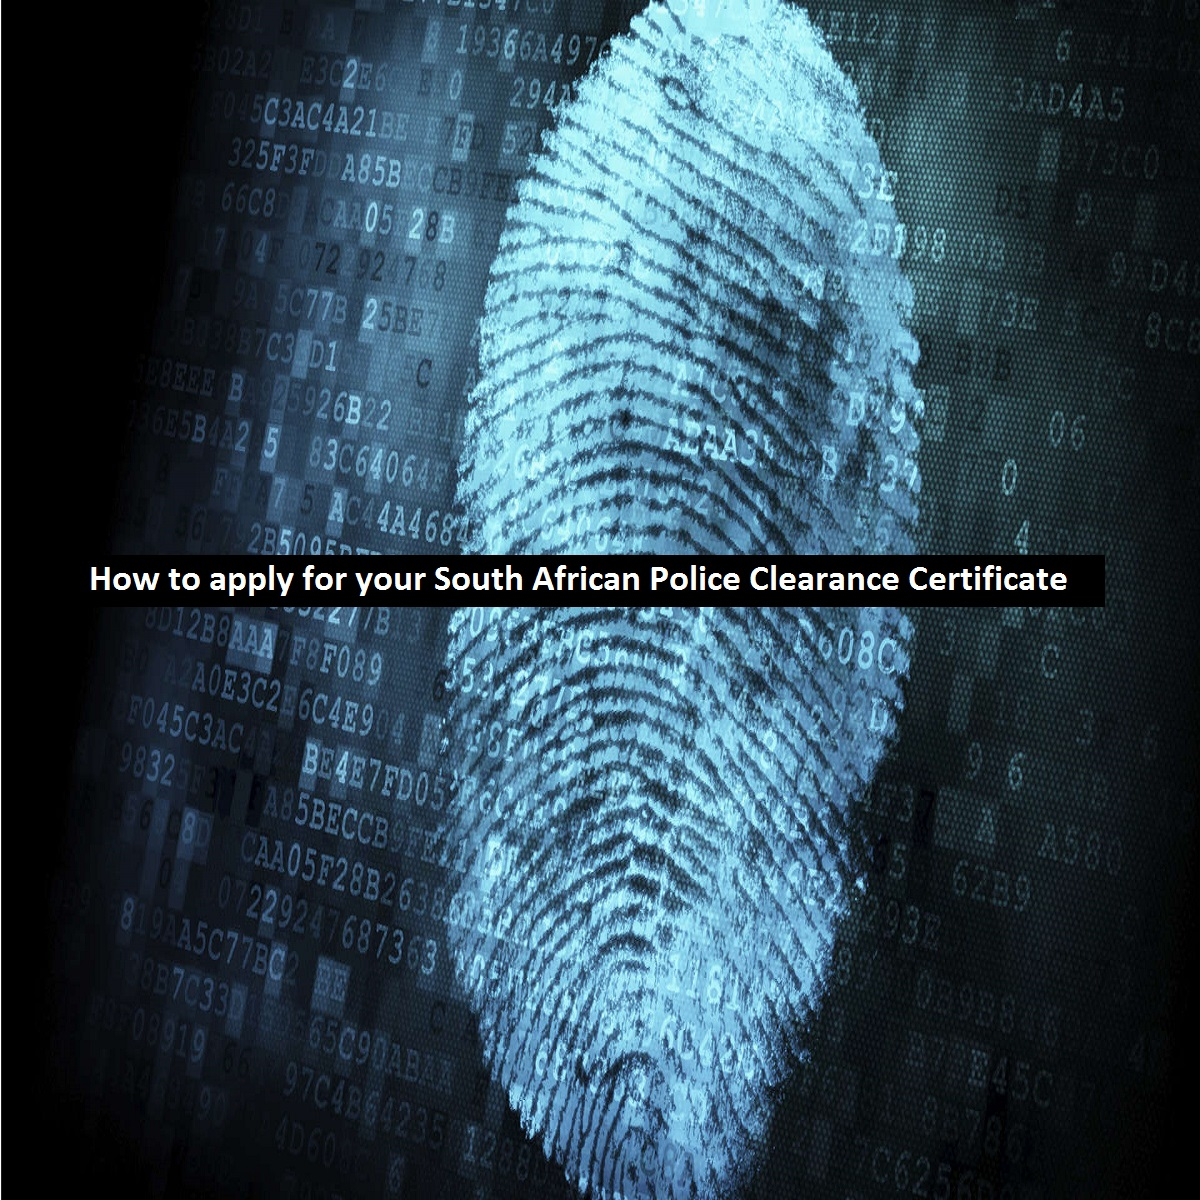 How To Apply For Your South African Police Clearance Certificate